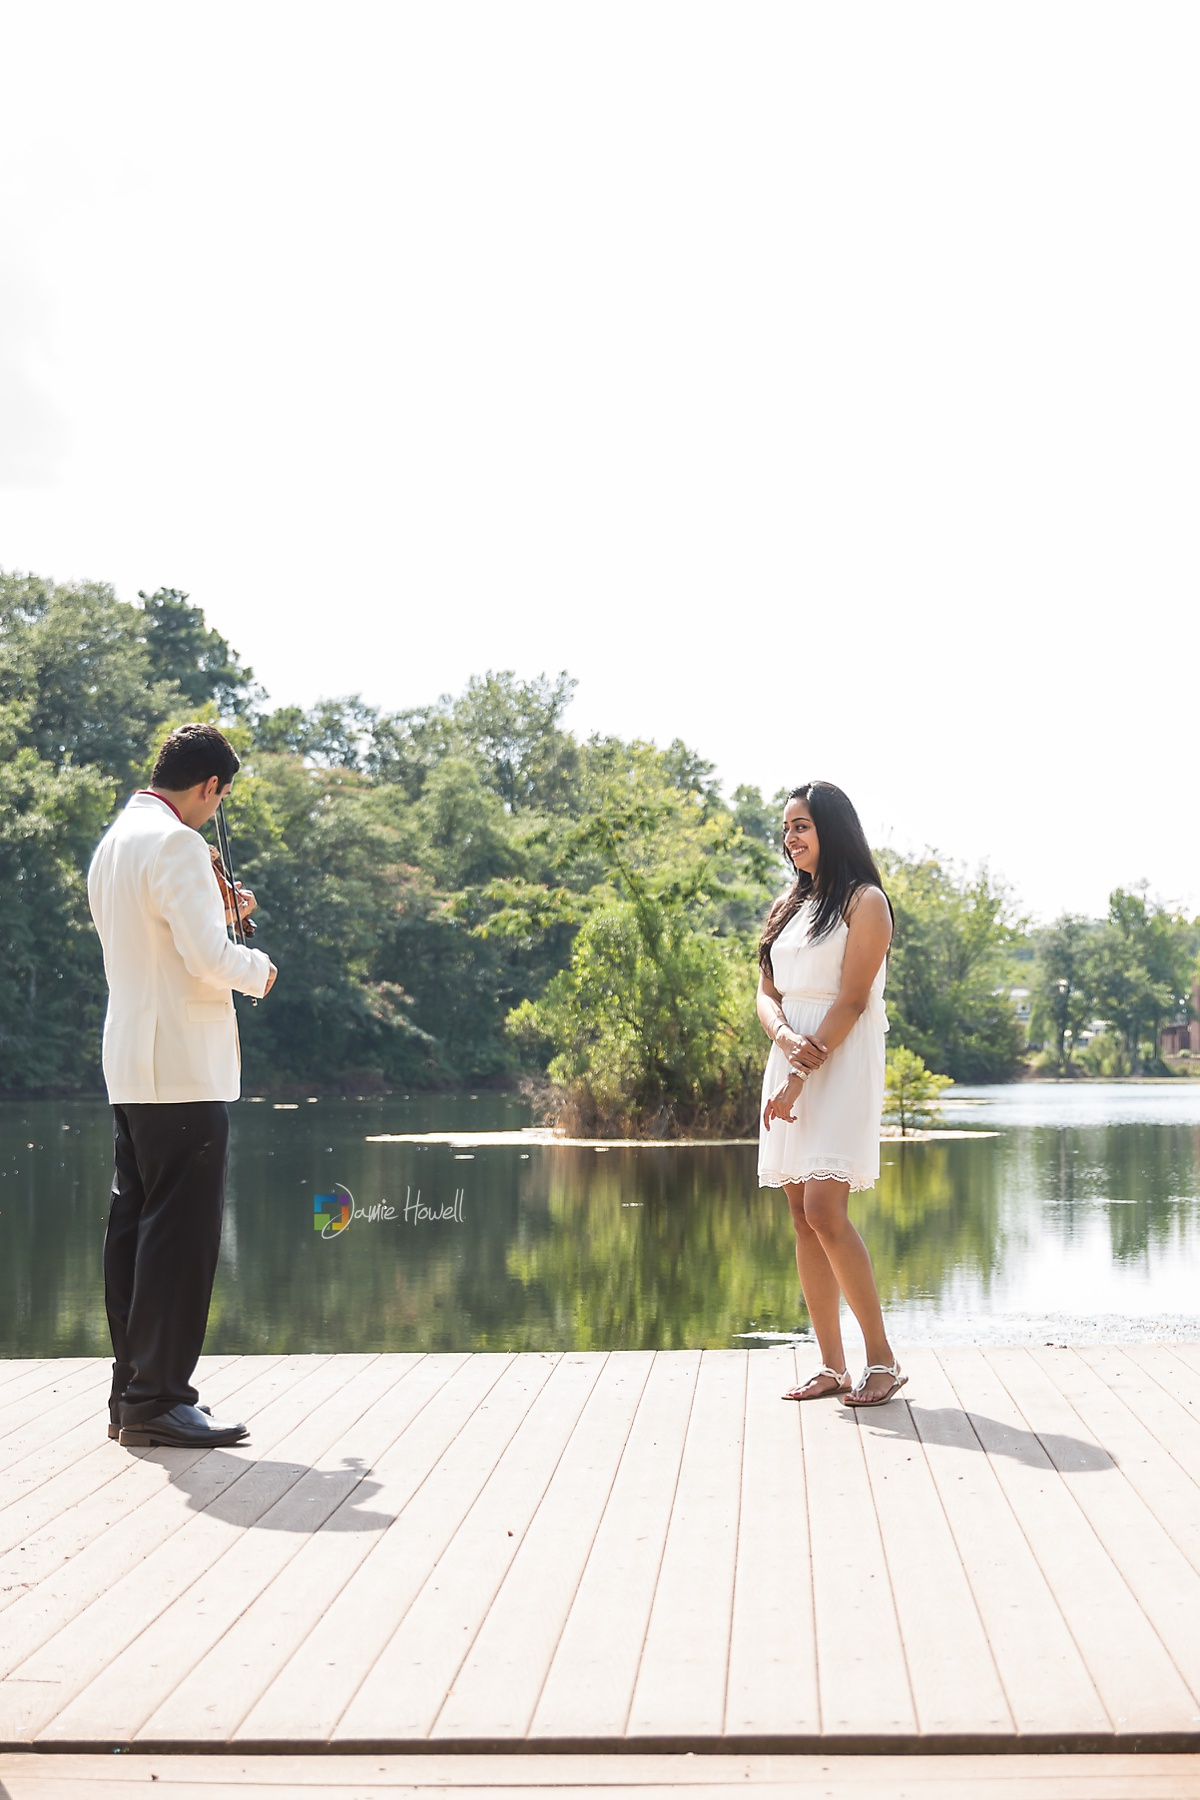 Nitesh_proposal-7